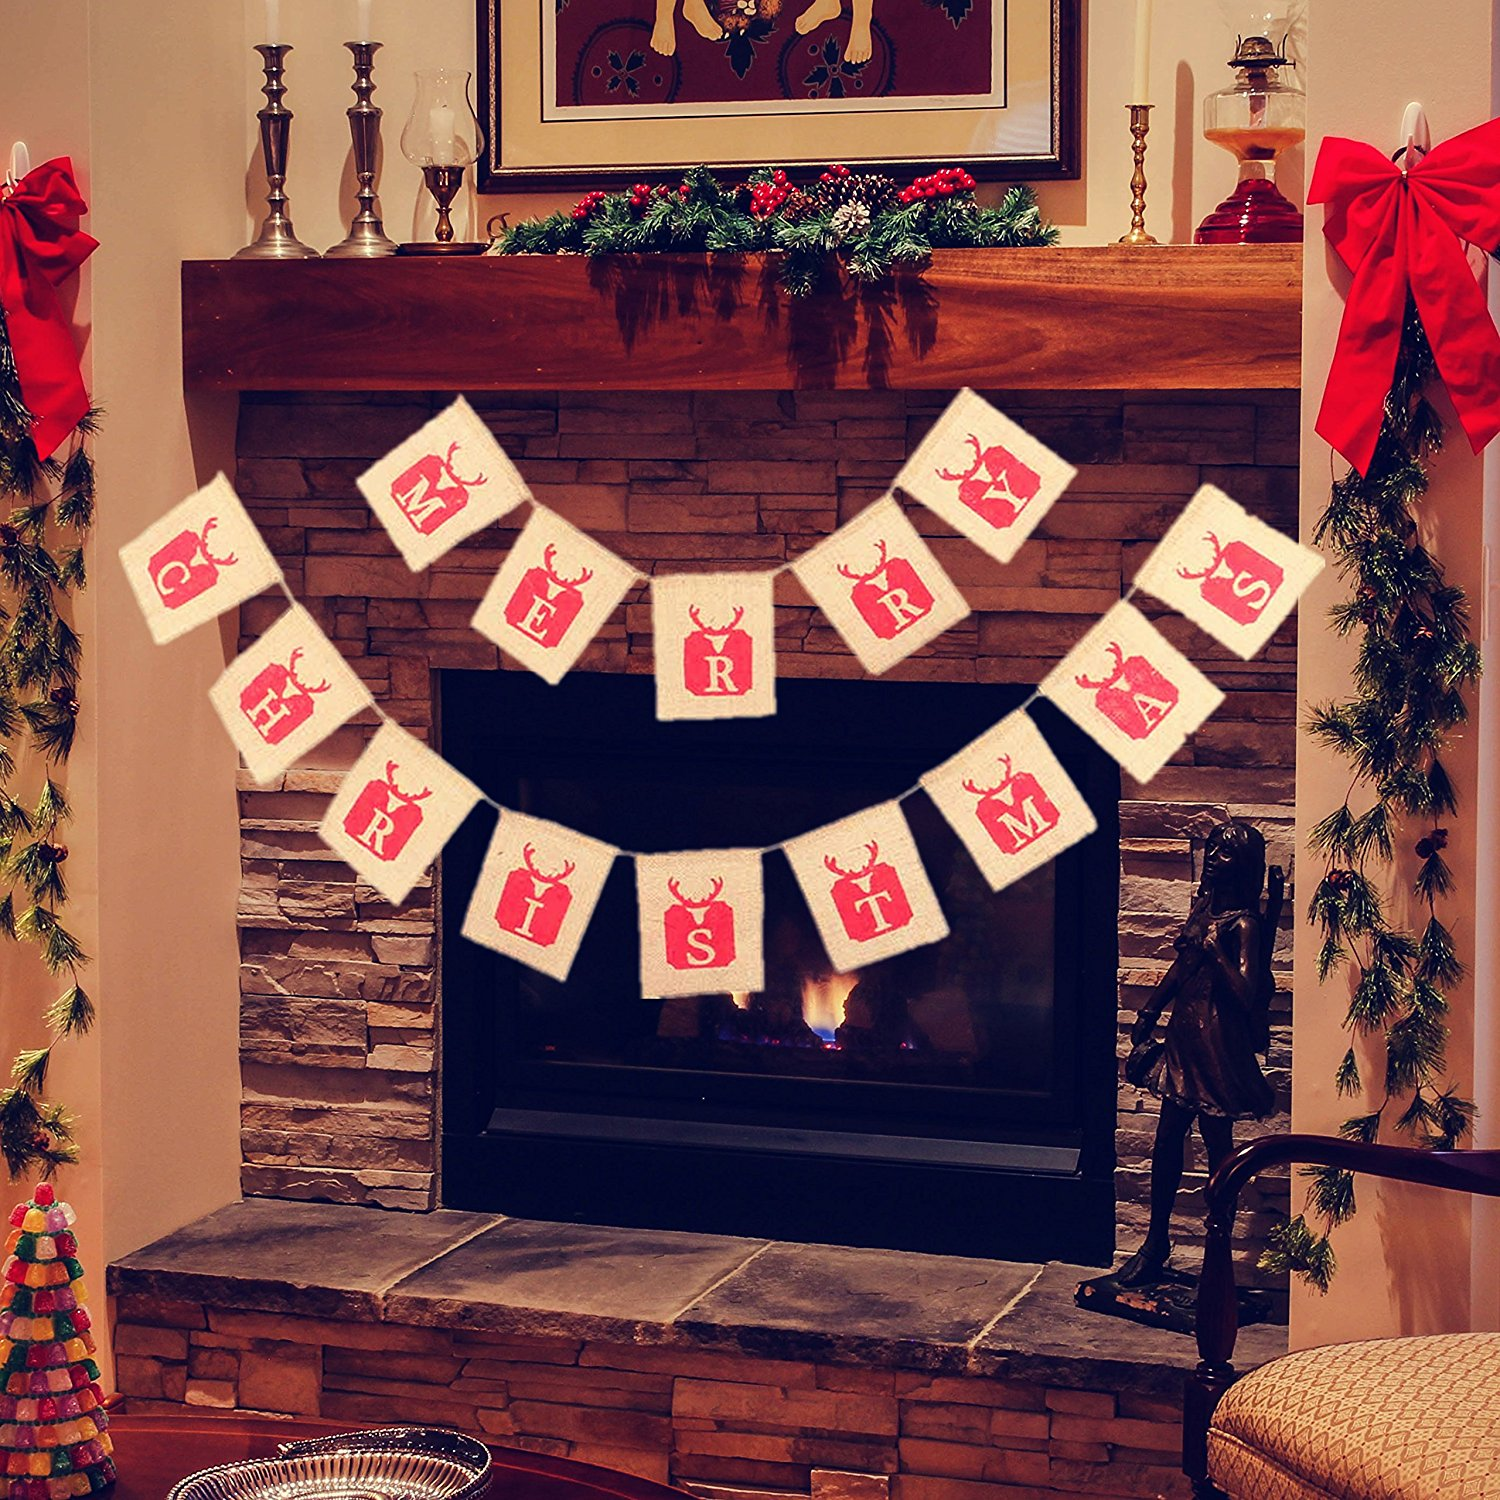 Merry Christmas Burlap Banner for Christmas Decorations, Christmas Banner, Burlap Christmas Banner Garlands for Home Decor Xmas Party Photo Props VAG035